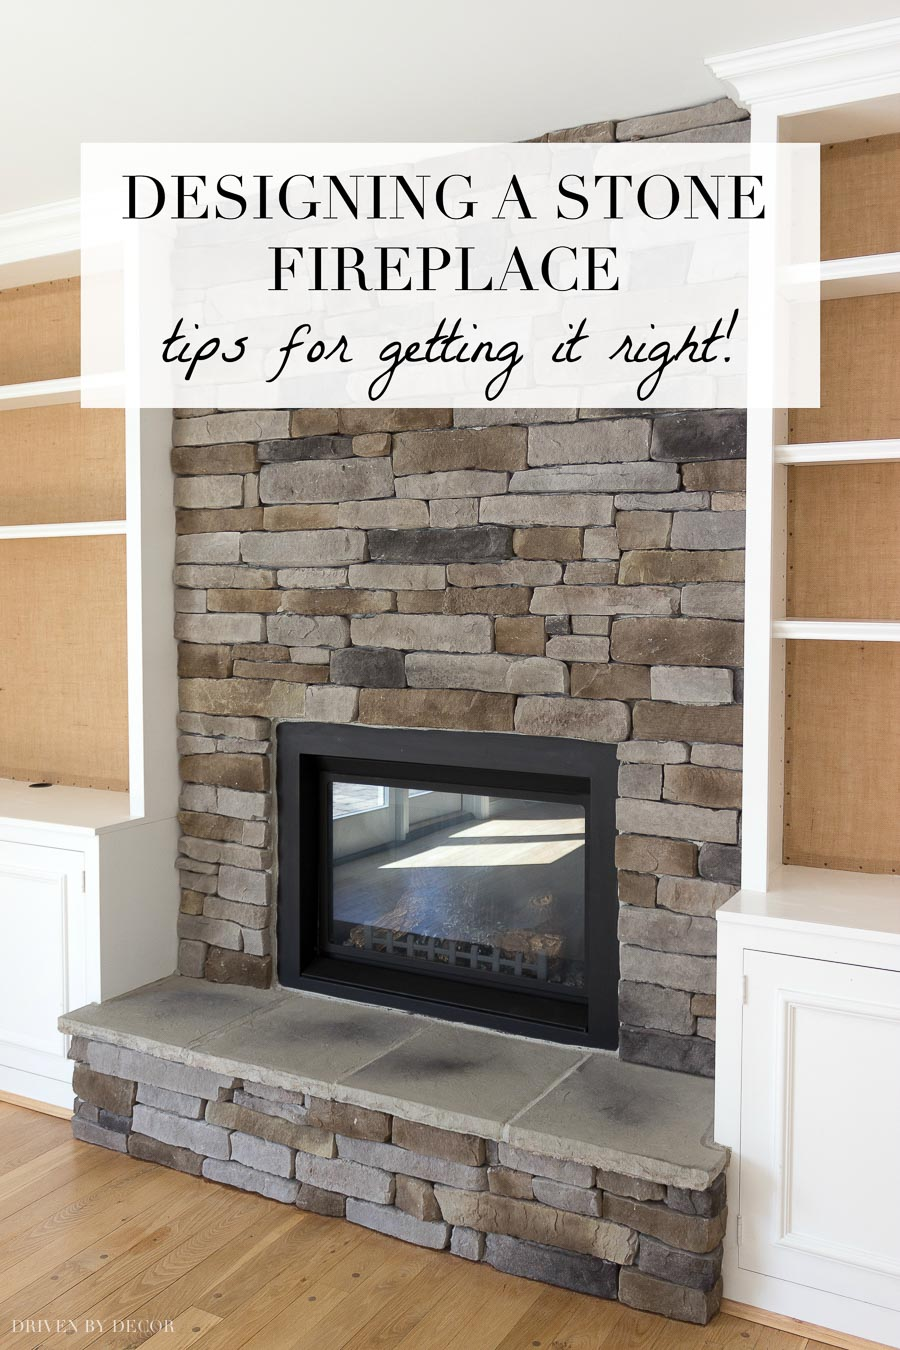 Great Tips For Designing A Stone Fireplace Like This Beautiful Stacked Veneer